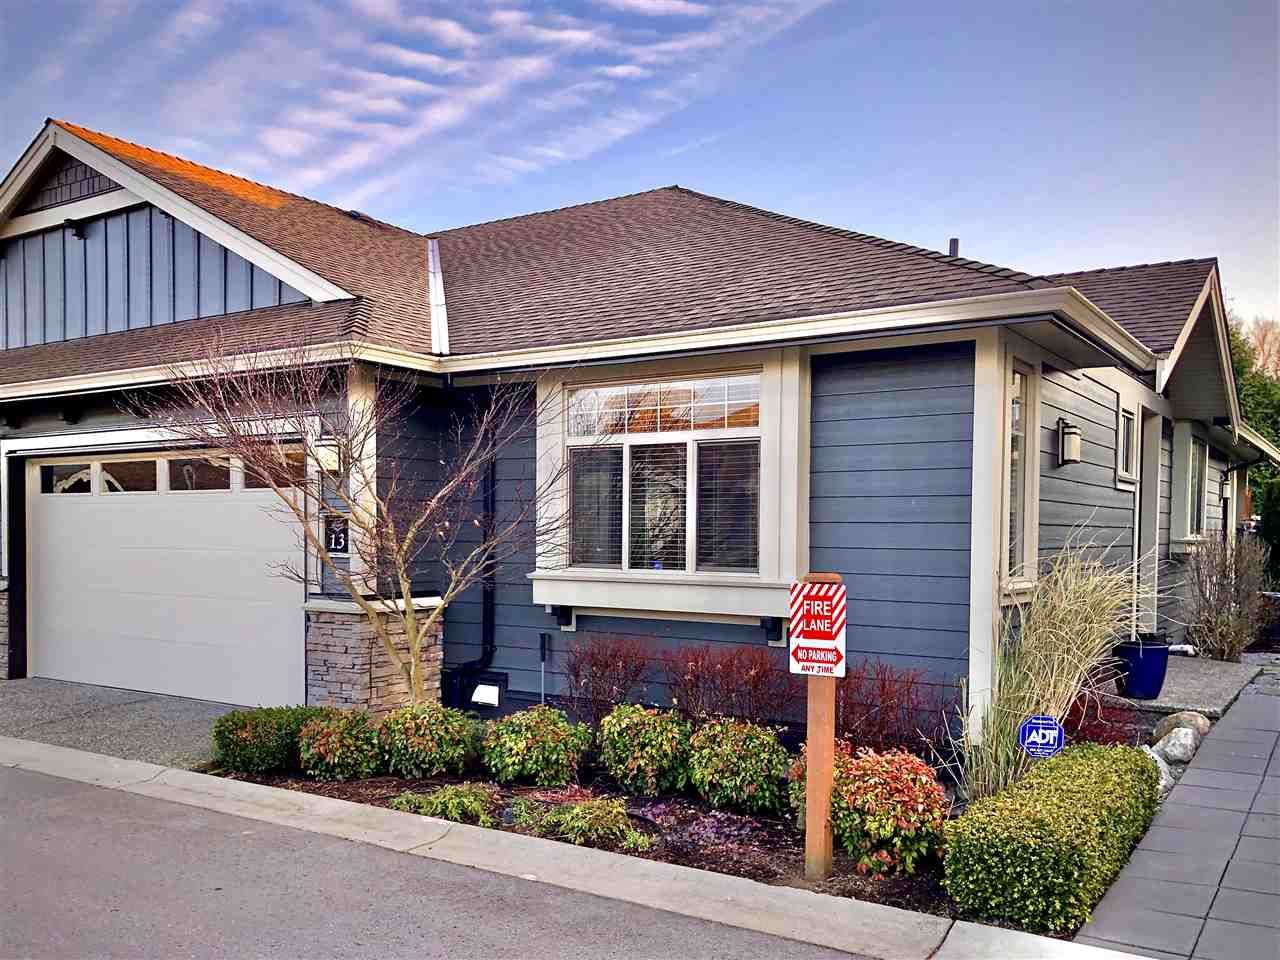 """Main Photo: 13 350 174 Street in Surrey: Pacific Douglas Townhouse for sale in """"The Greens"""" (South Surrey White Rock)  : MLS®# R2433866"""